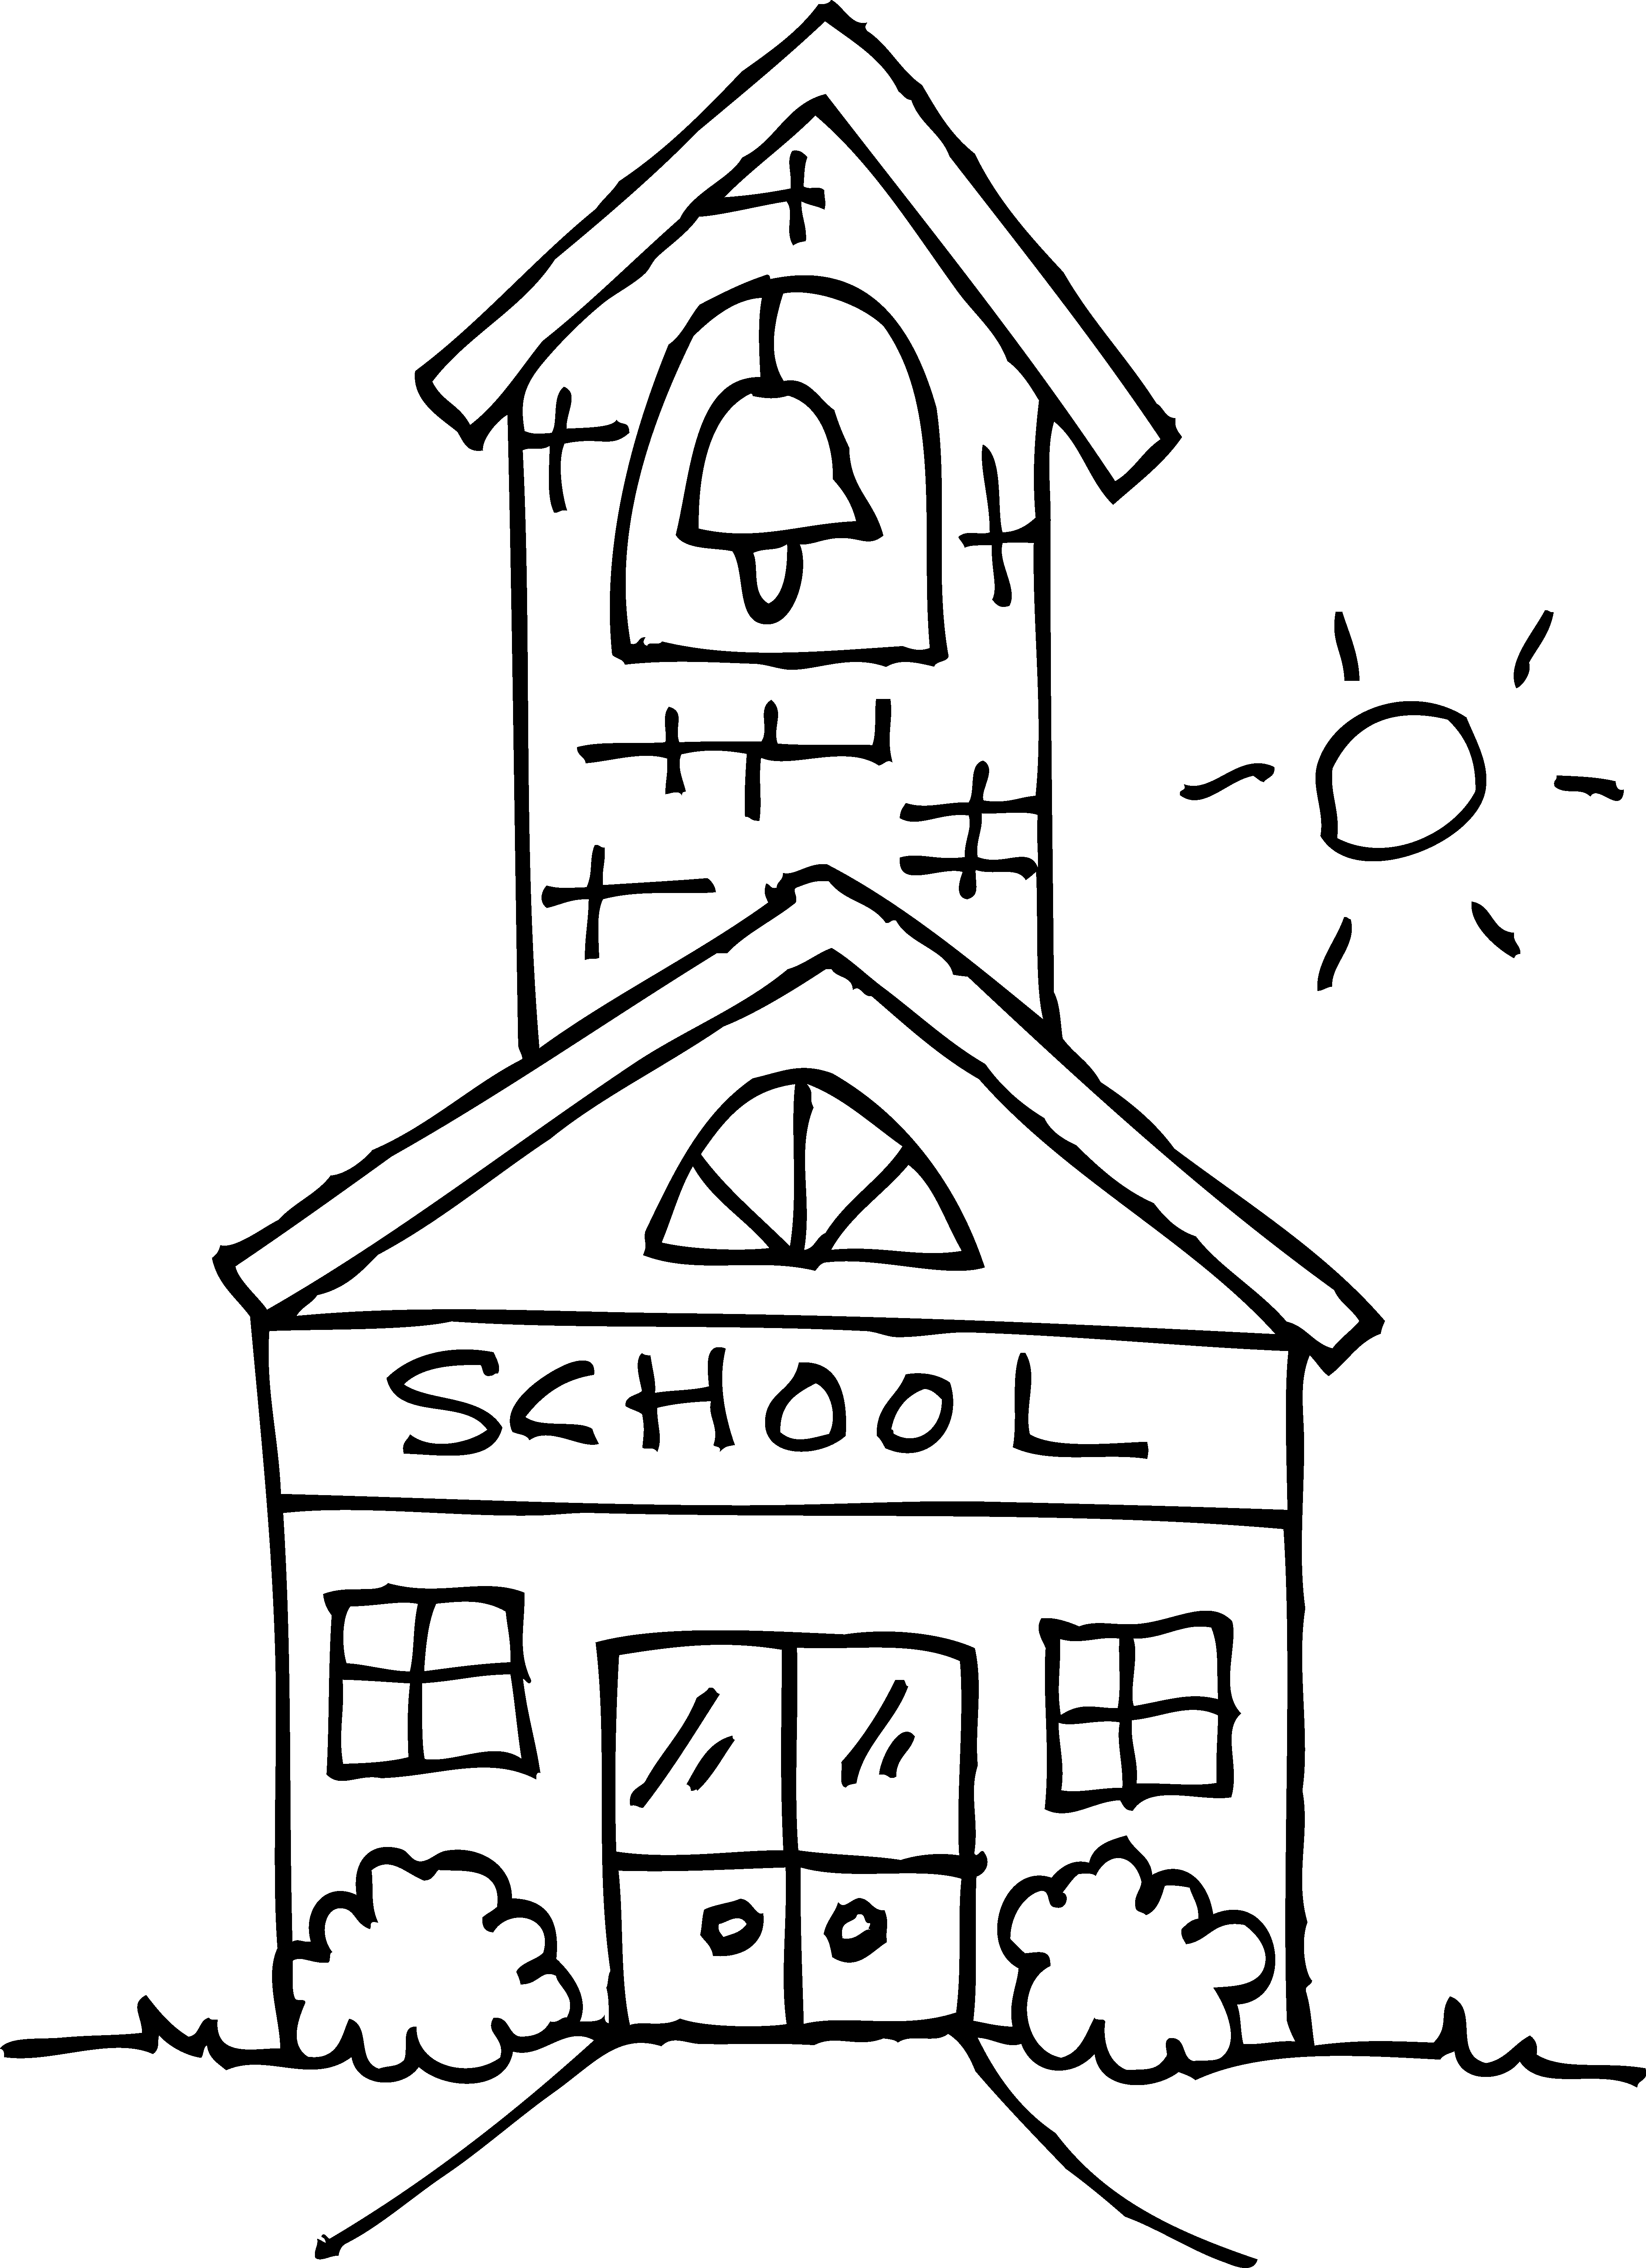 school building coloring pages school building coloring pages wecoloringpagecom building school pages coloring